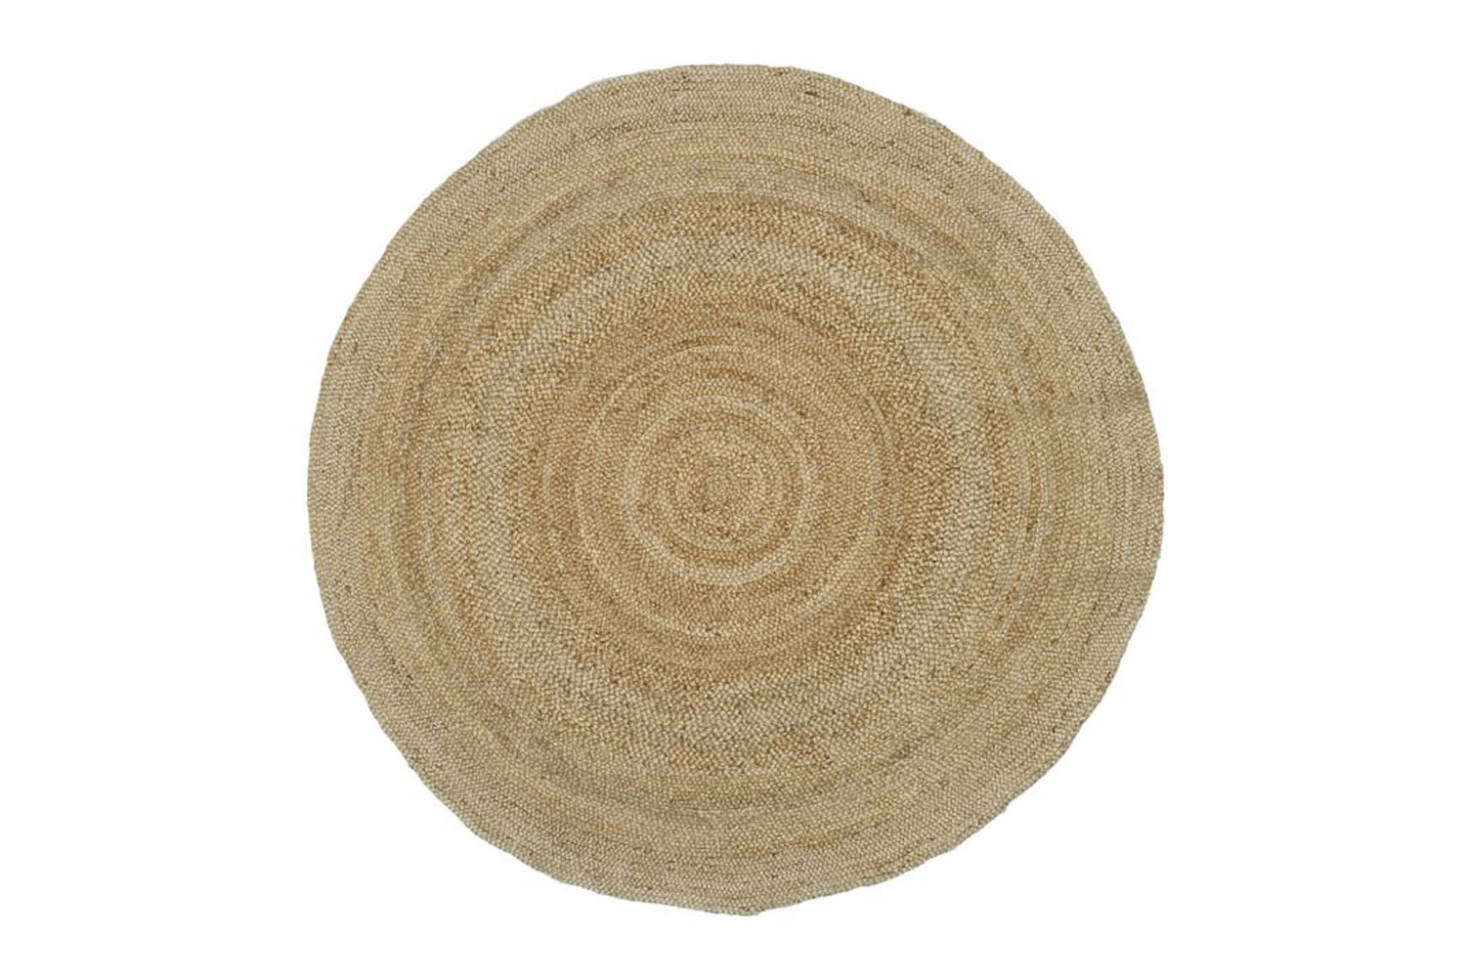 The Pottery Barn 8-Foot Round Jute Rug in Natural is $9.